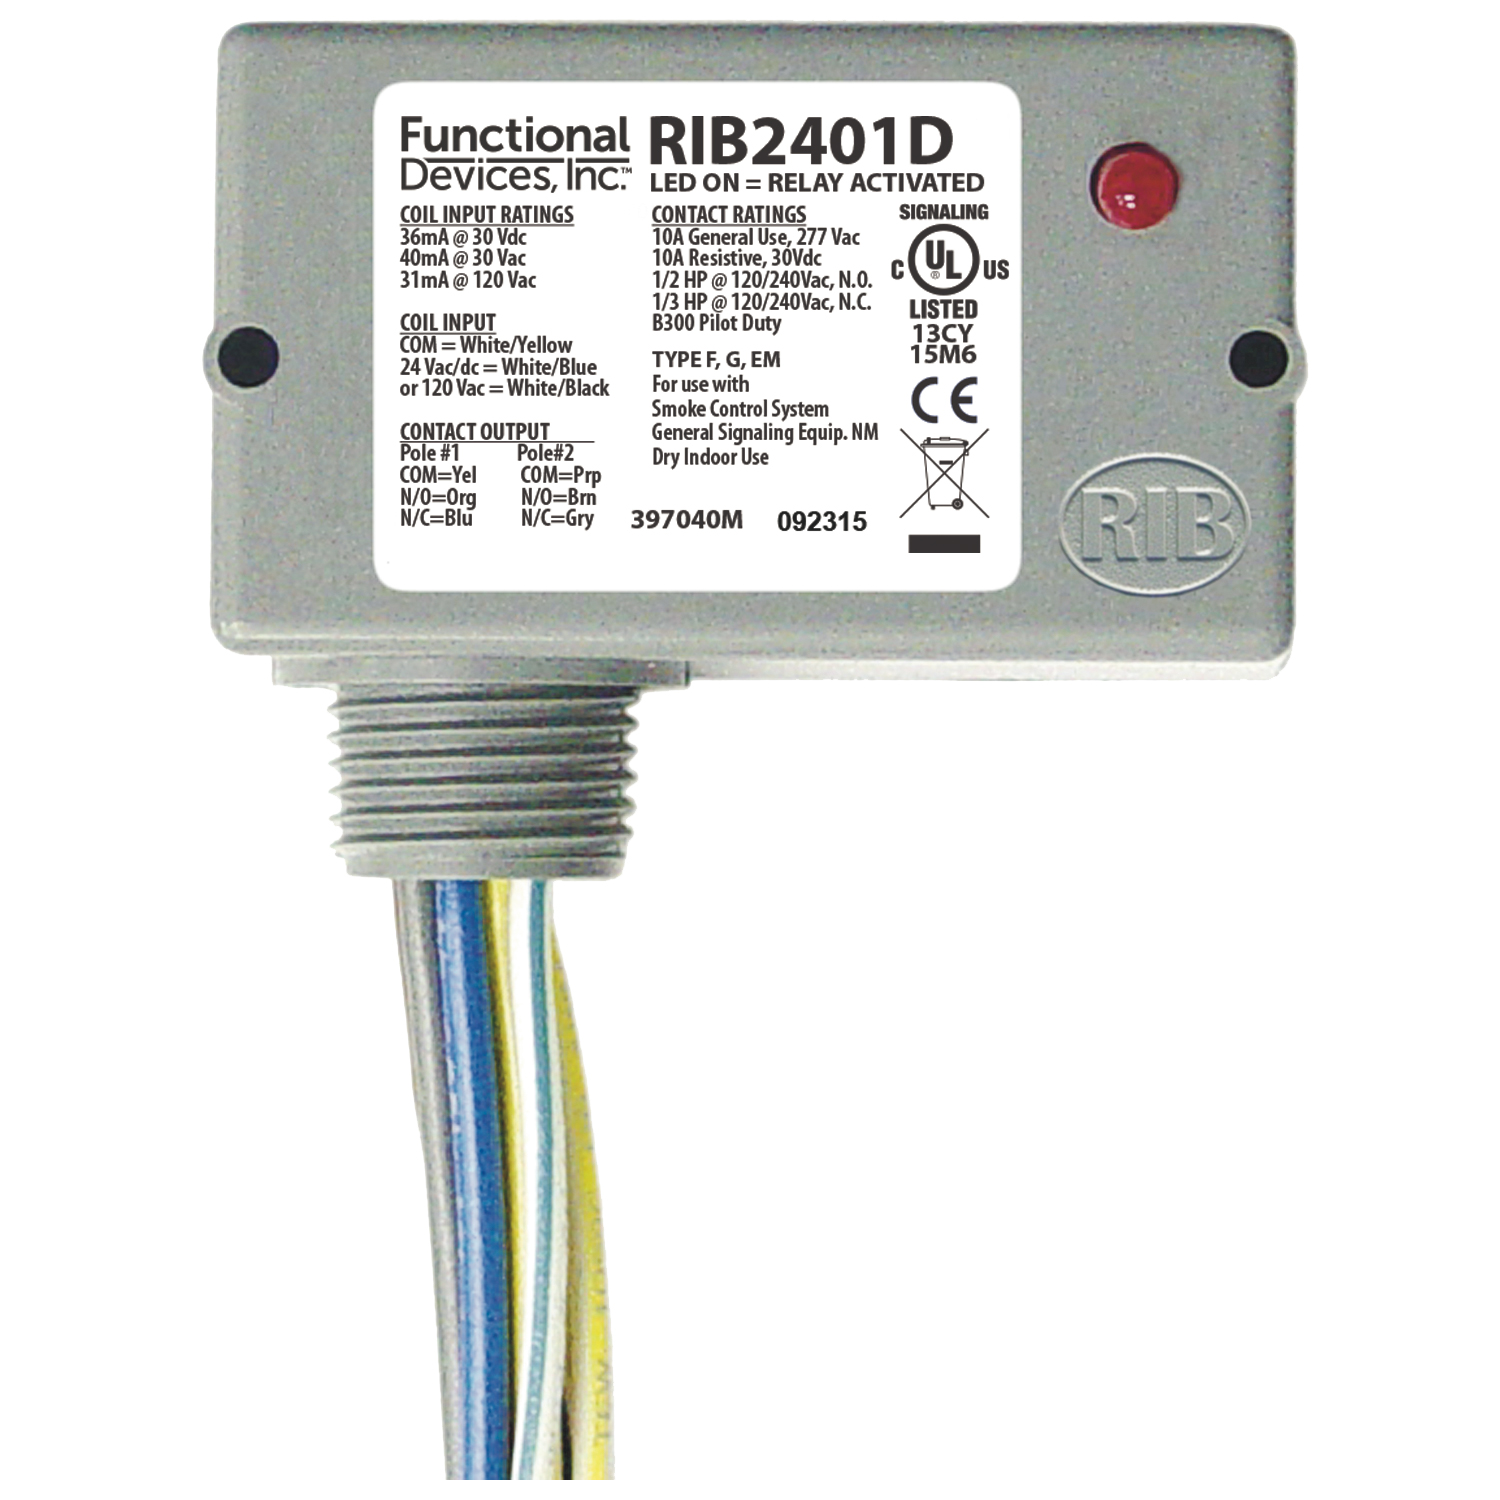 RIB2401D functional devices (rib) rib2401d enclosed relay 10amp dpdt 24vac rib relay in a box wiring diagram at nearapp.co